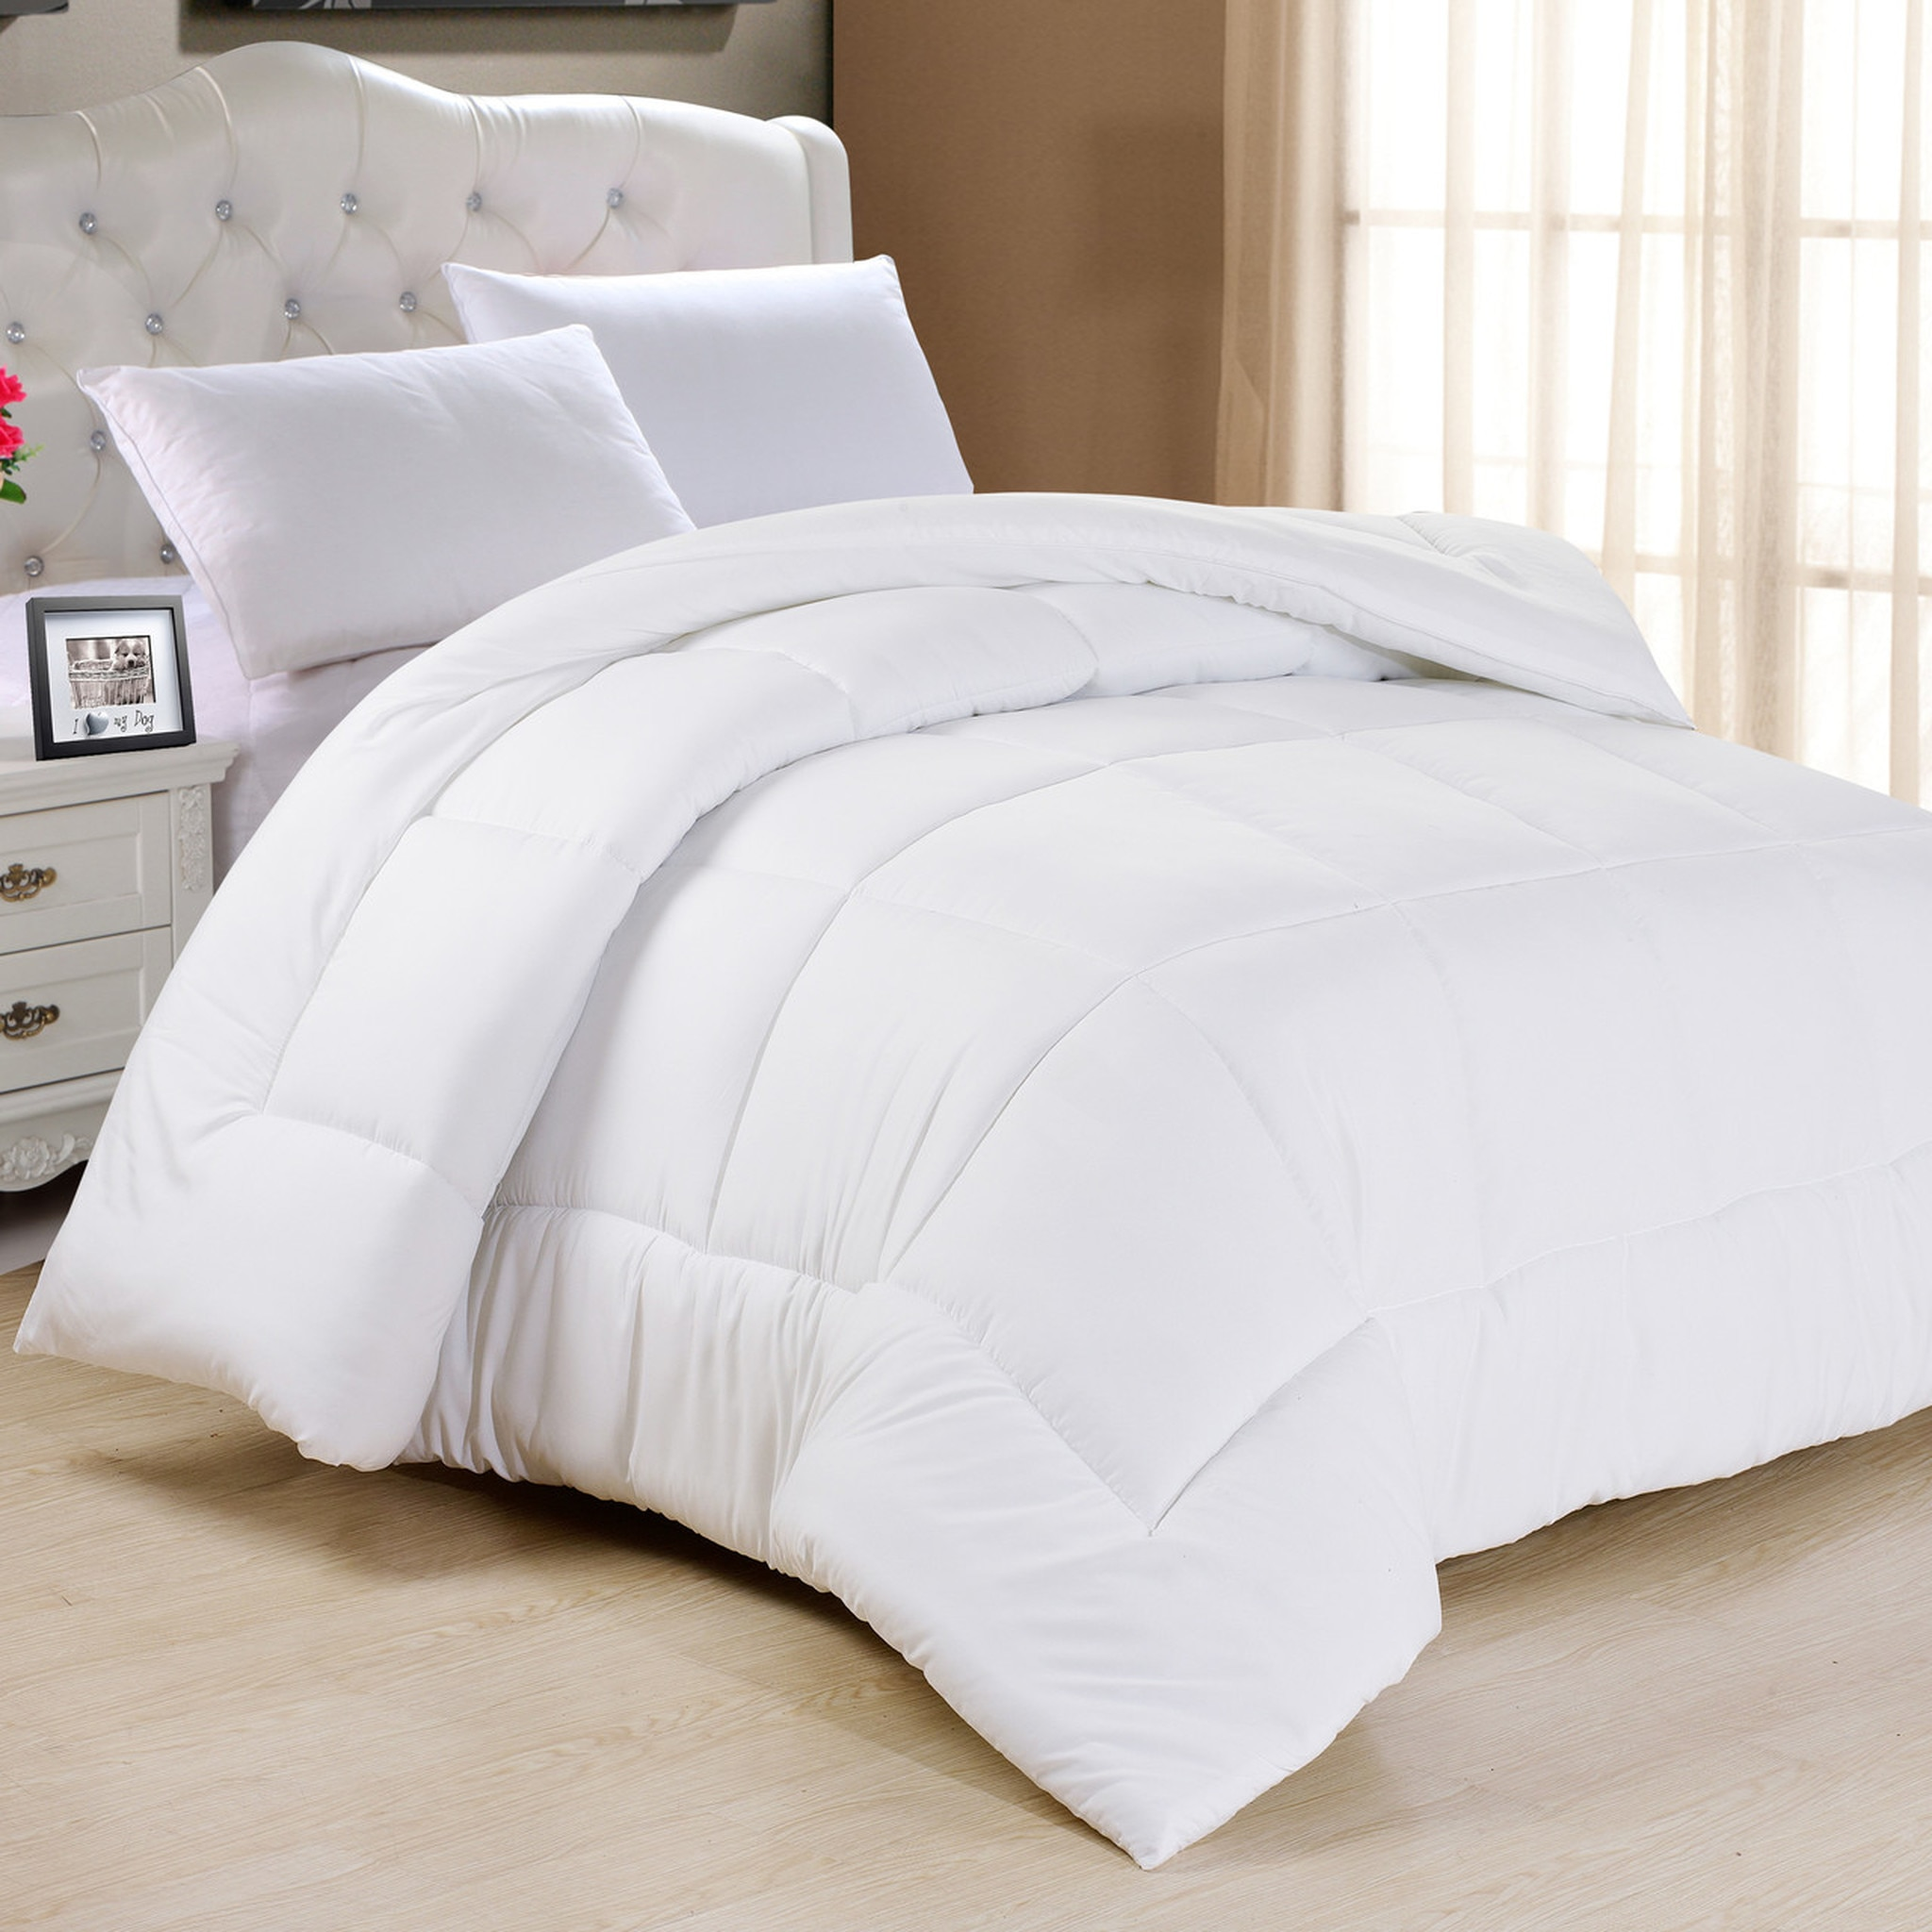 """When we think of """"the right pillow"""", we usually think of something soft and fluffy, and wh..."""